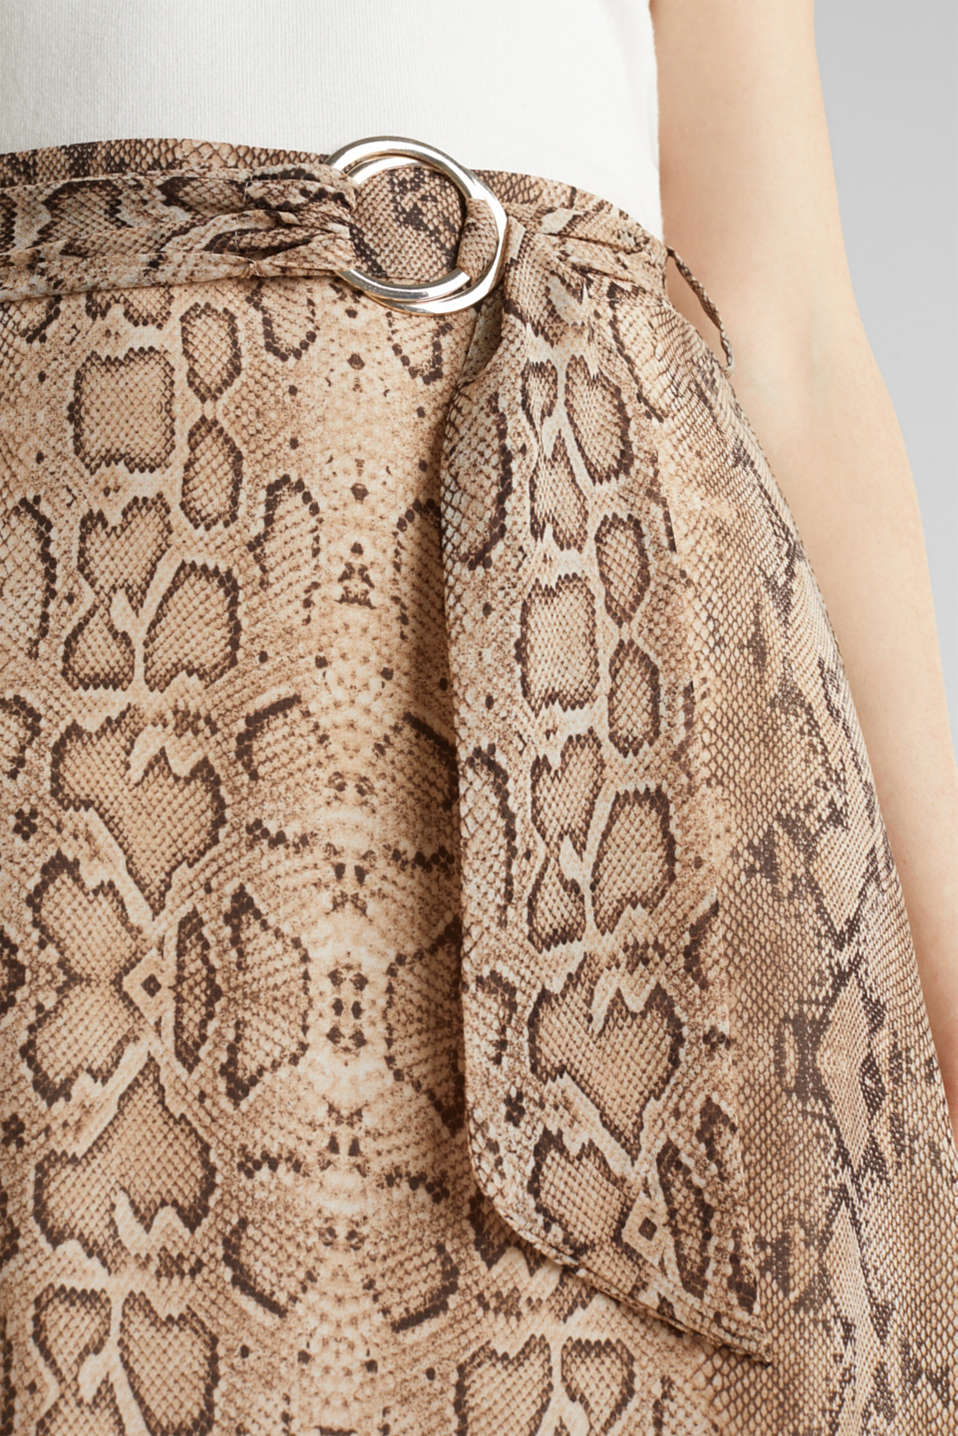 Chiffon skirt with snake print, LIGHT TAUPE 4, detail image number 2